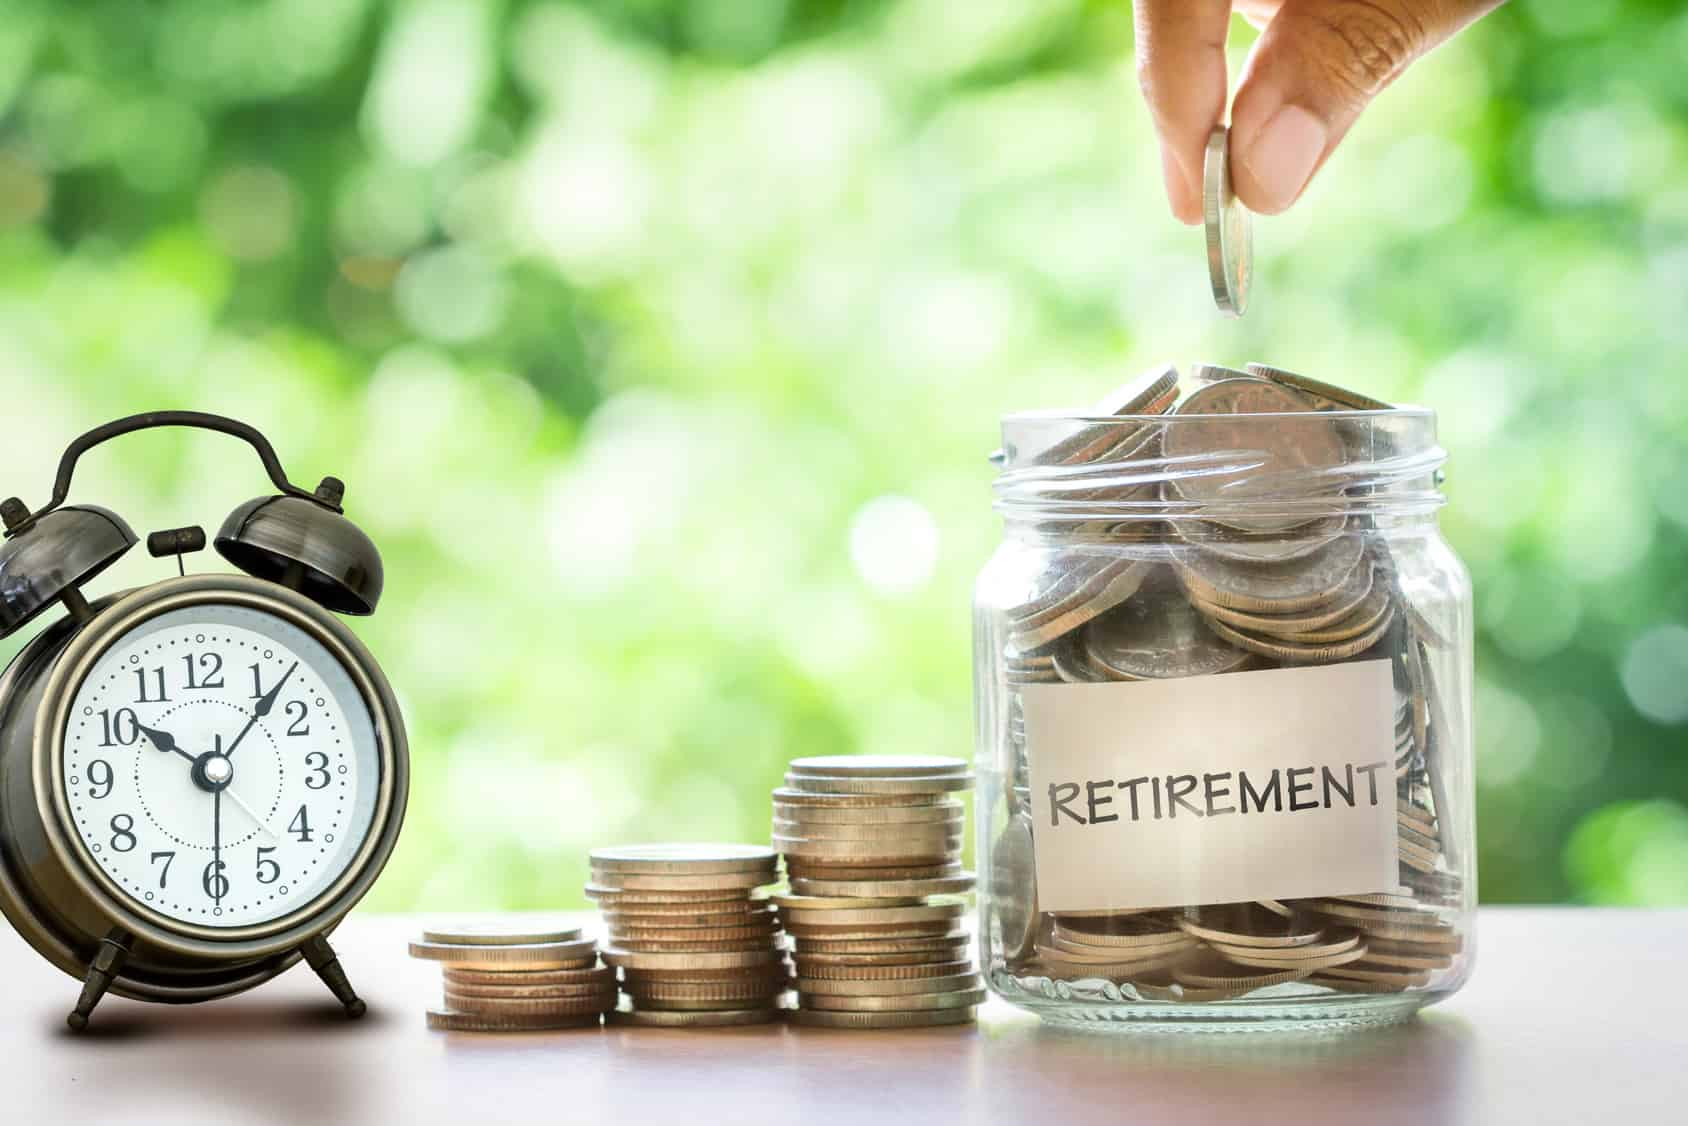 It's time to learn how to save for retirement